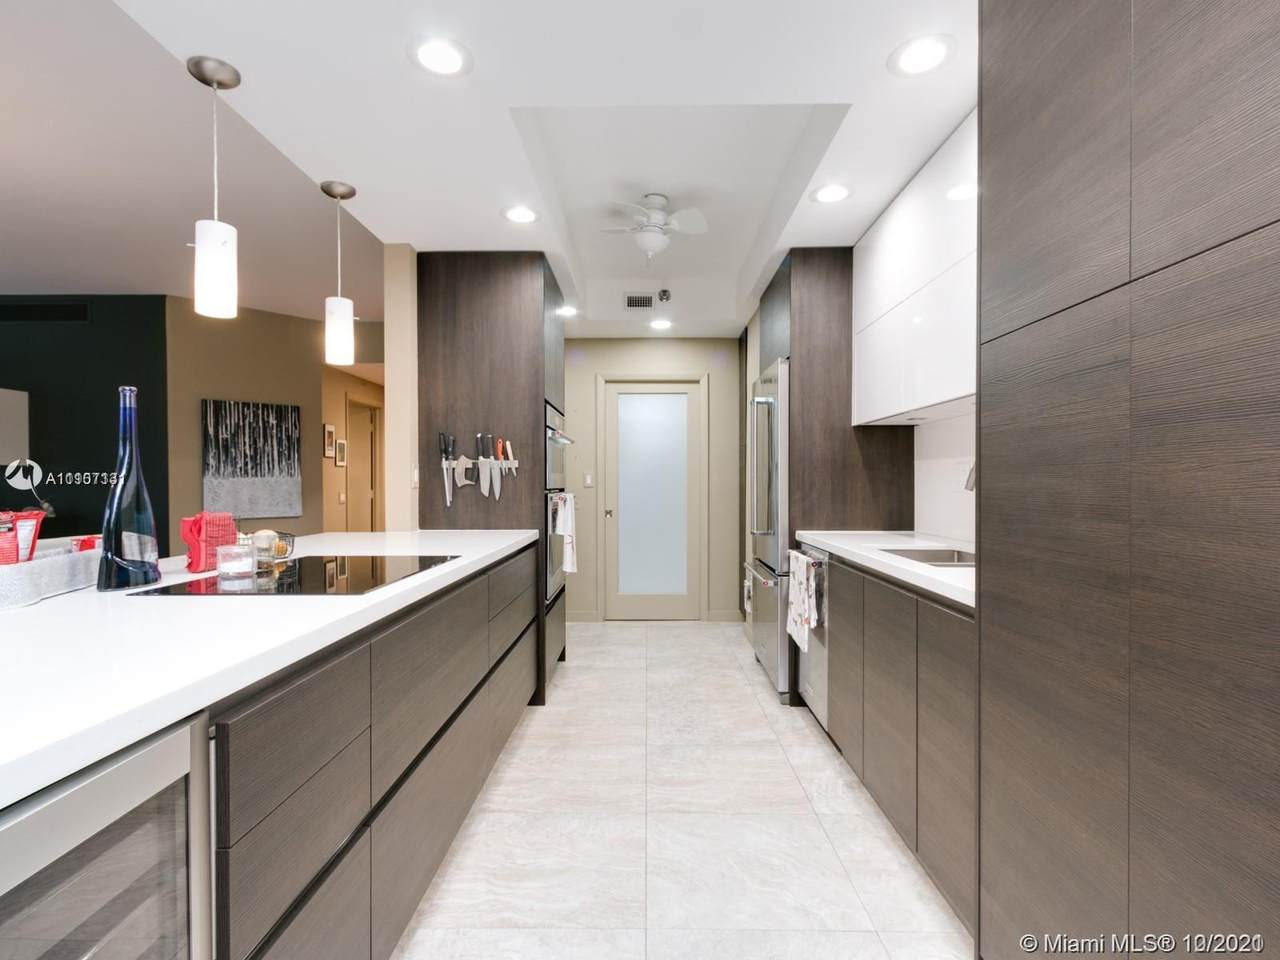 21150 38th Ave - Photo 1